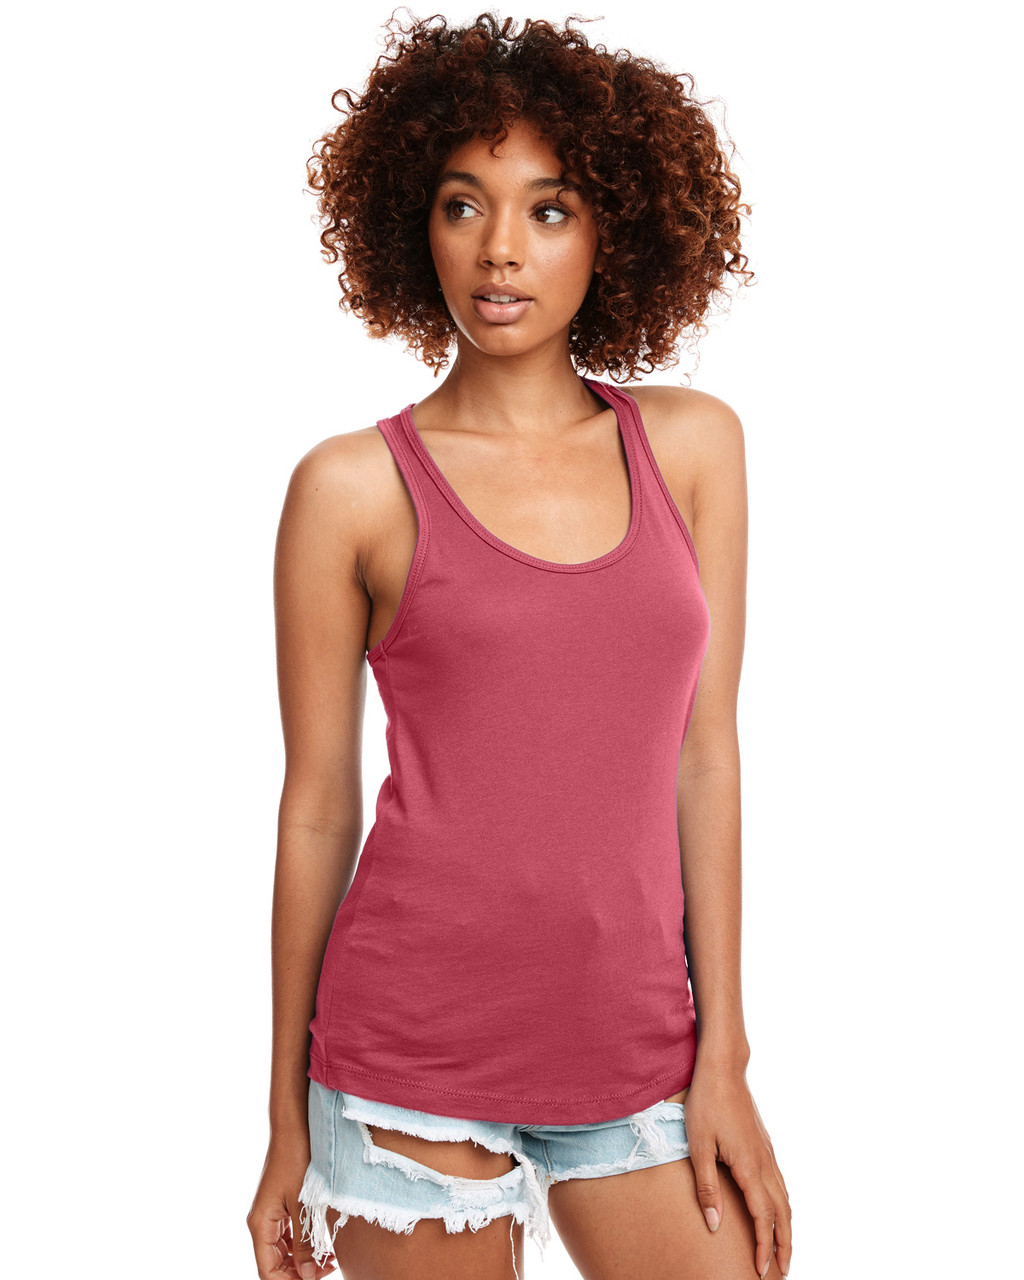 Hot Pink - N1533 Next Level Ideal Racerback Tank Top | Blankclothing.ca